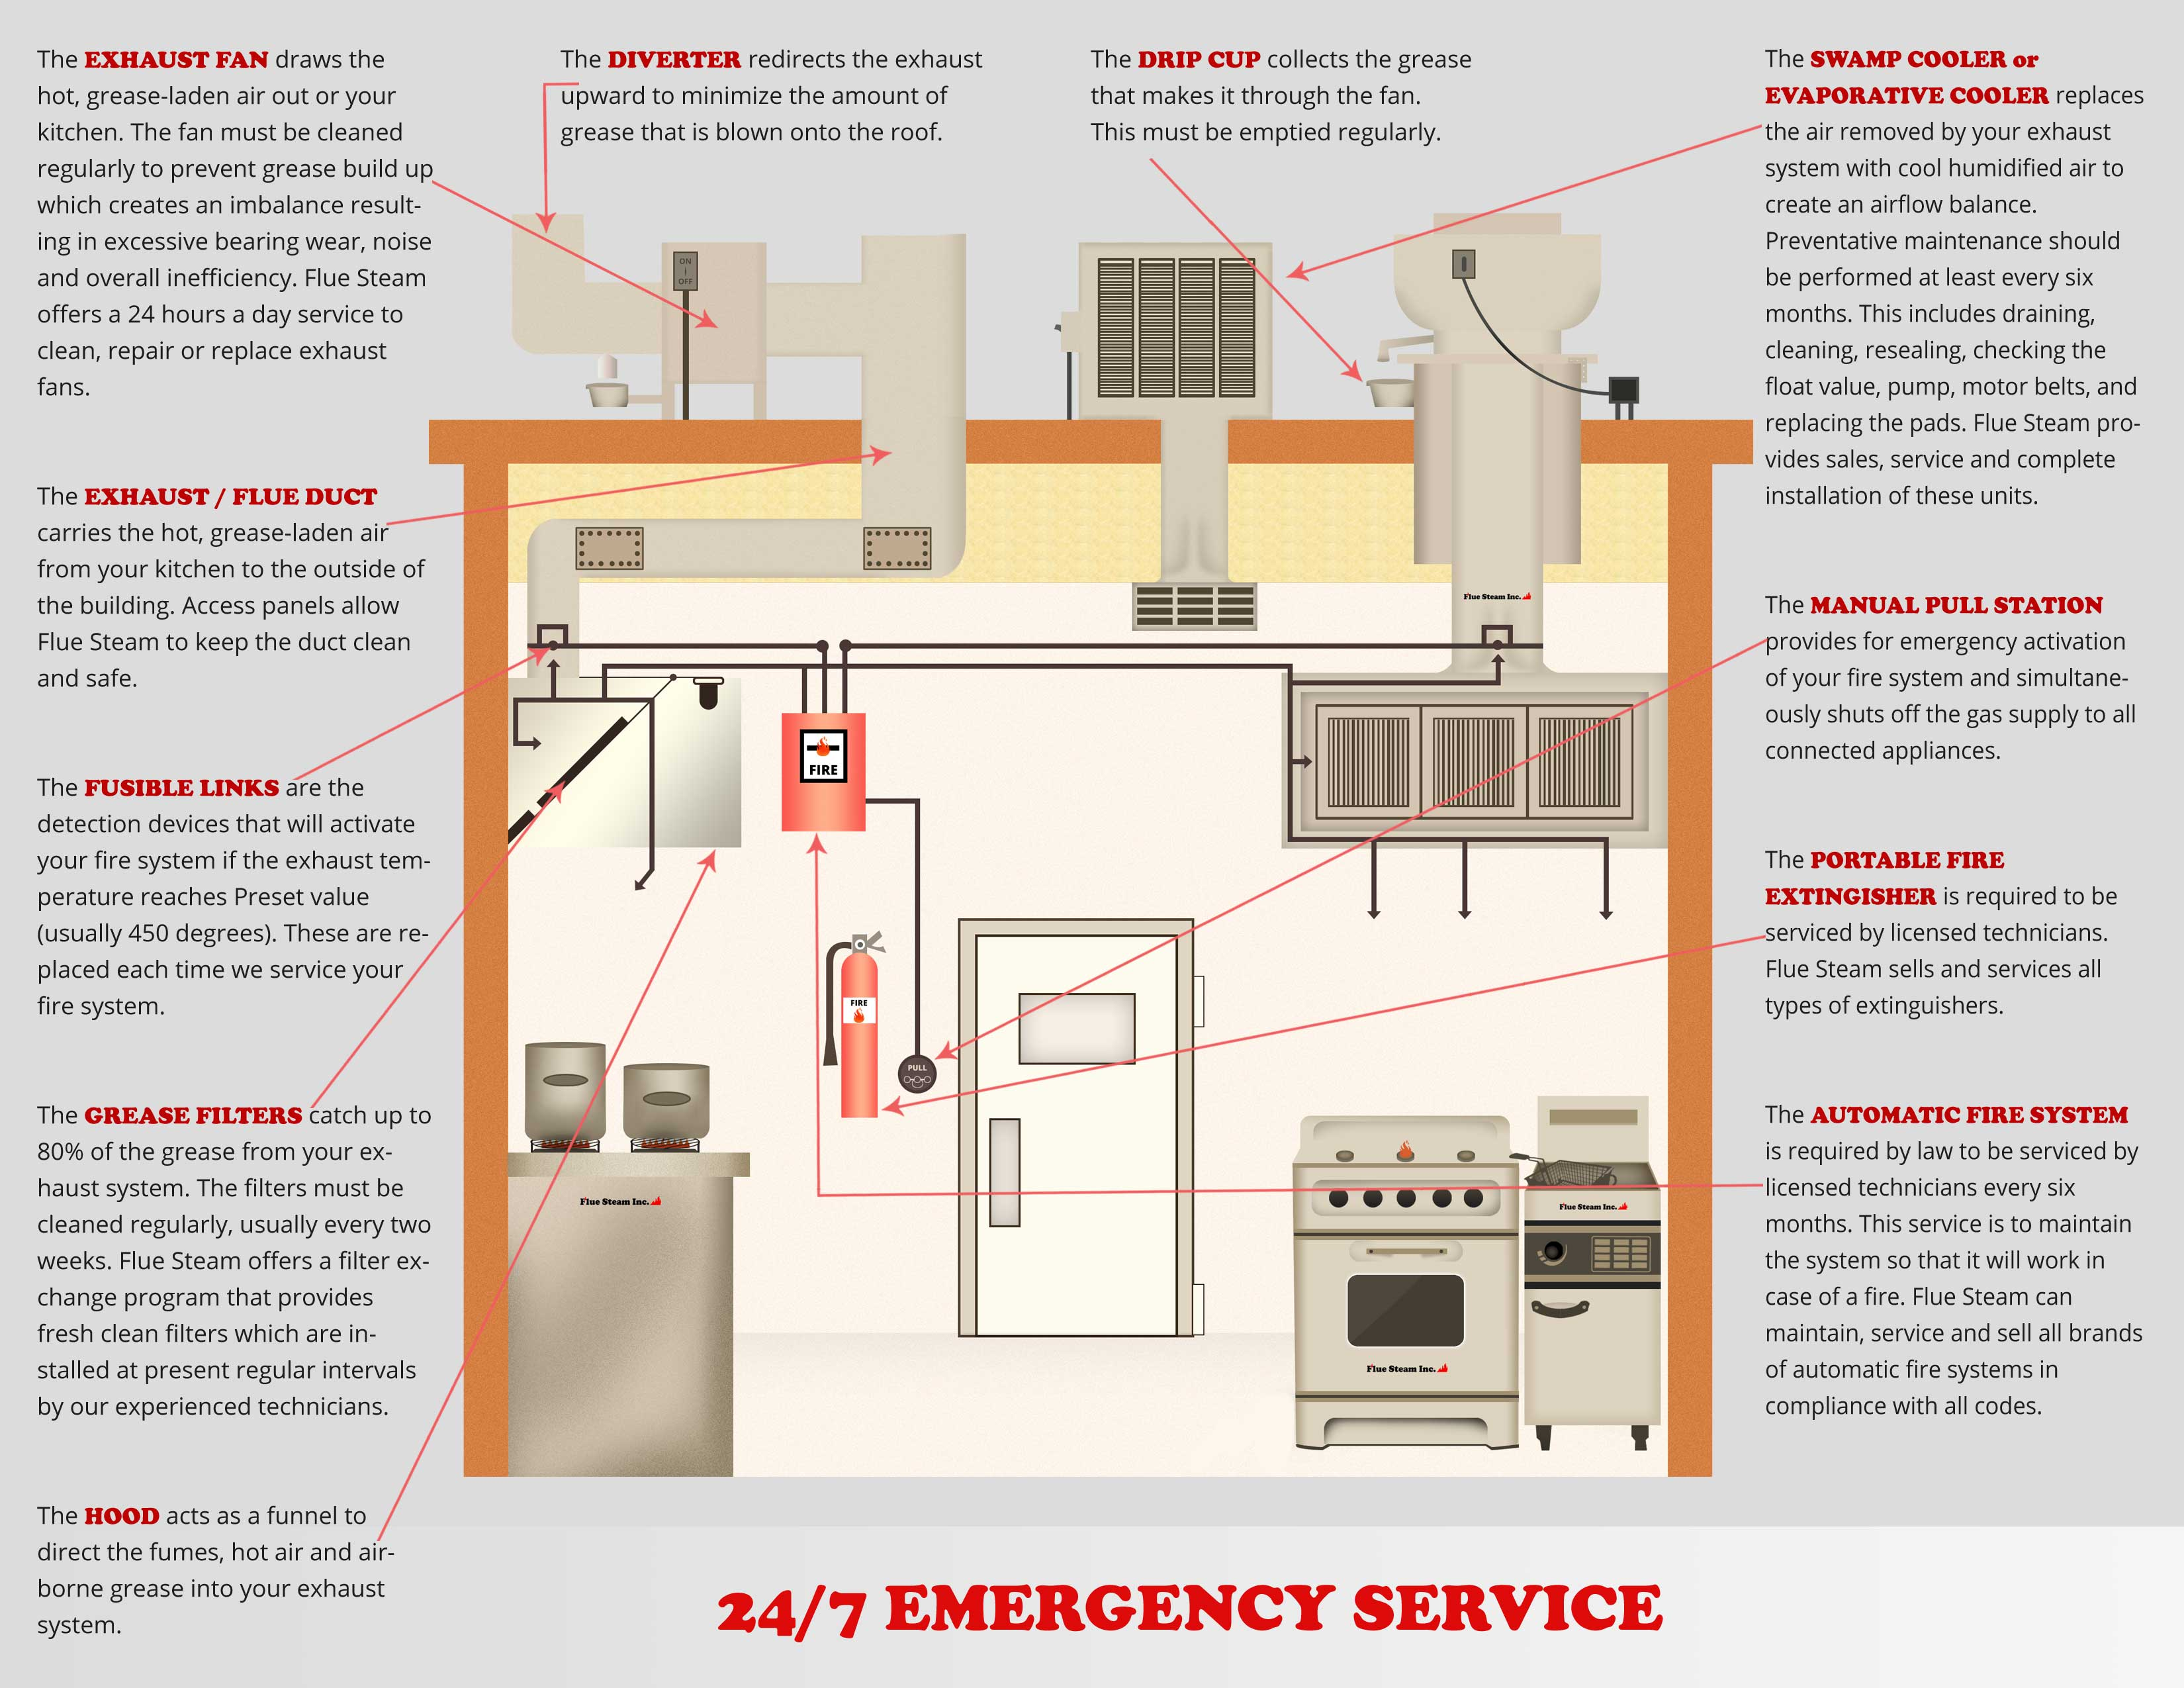 Kitchen Ventilation Systems : Swamp cooler service flue steam